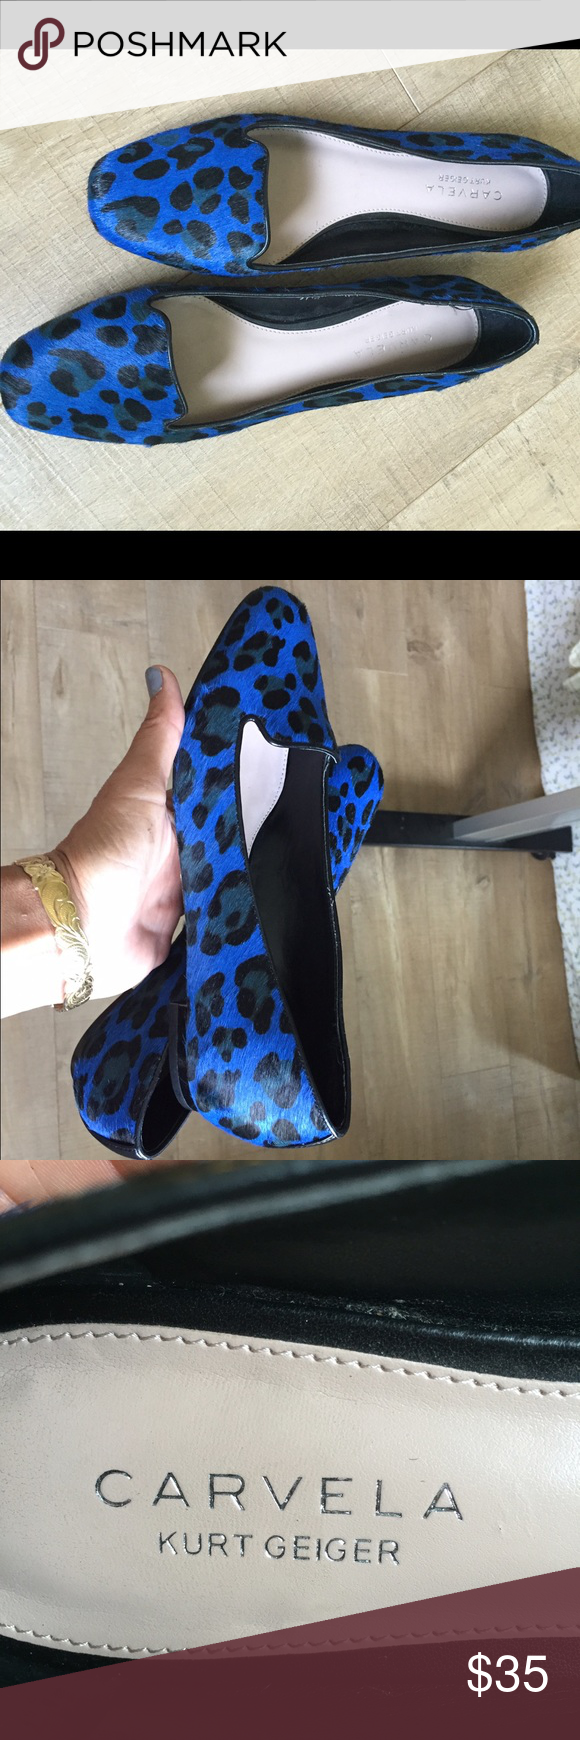 Loafer MINT CONDITION! Pony hair!  Kurt Geiger! Loafer! Blue leopard loafer CARVELA by Kurt Geiger CARVELA Shoes Flats & Loafers